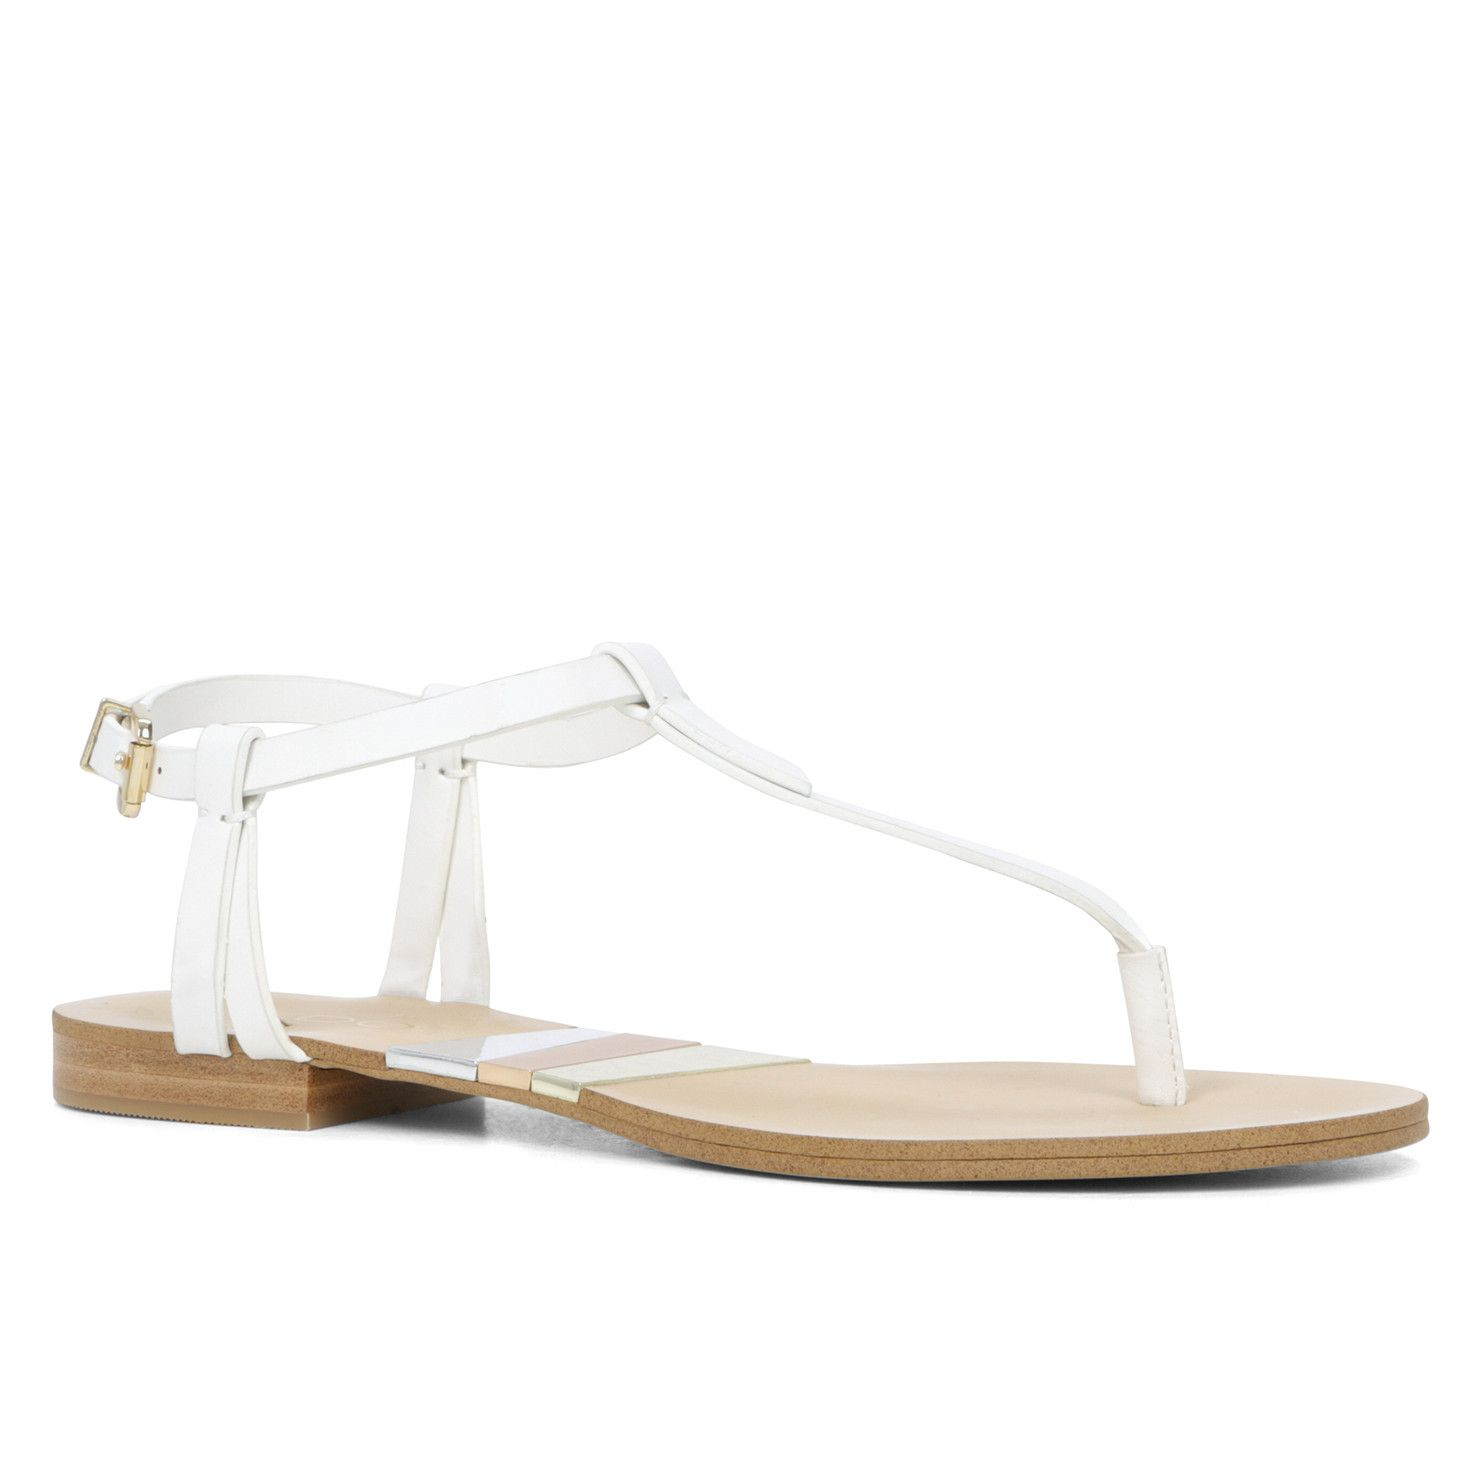 SUSIE Flat Sandals | Women's Sandals | ALDOShoes.com